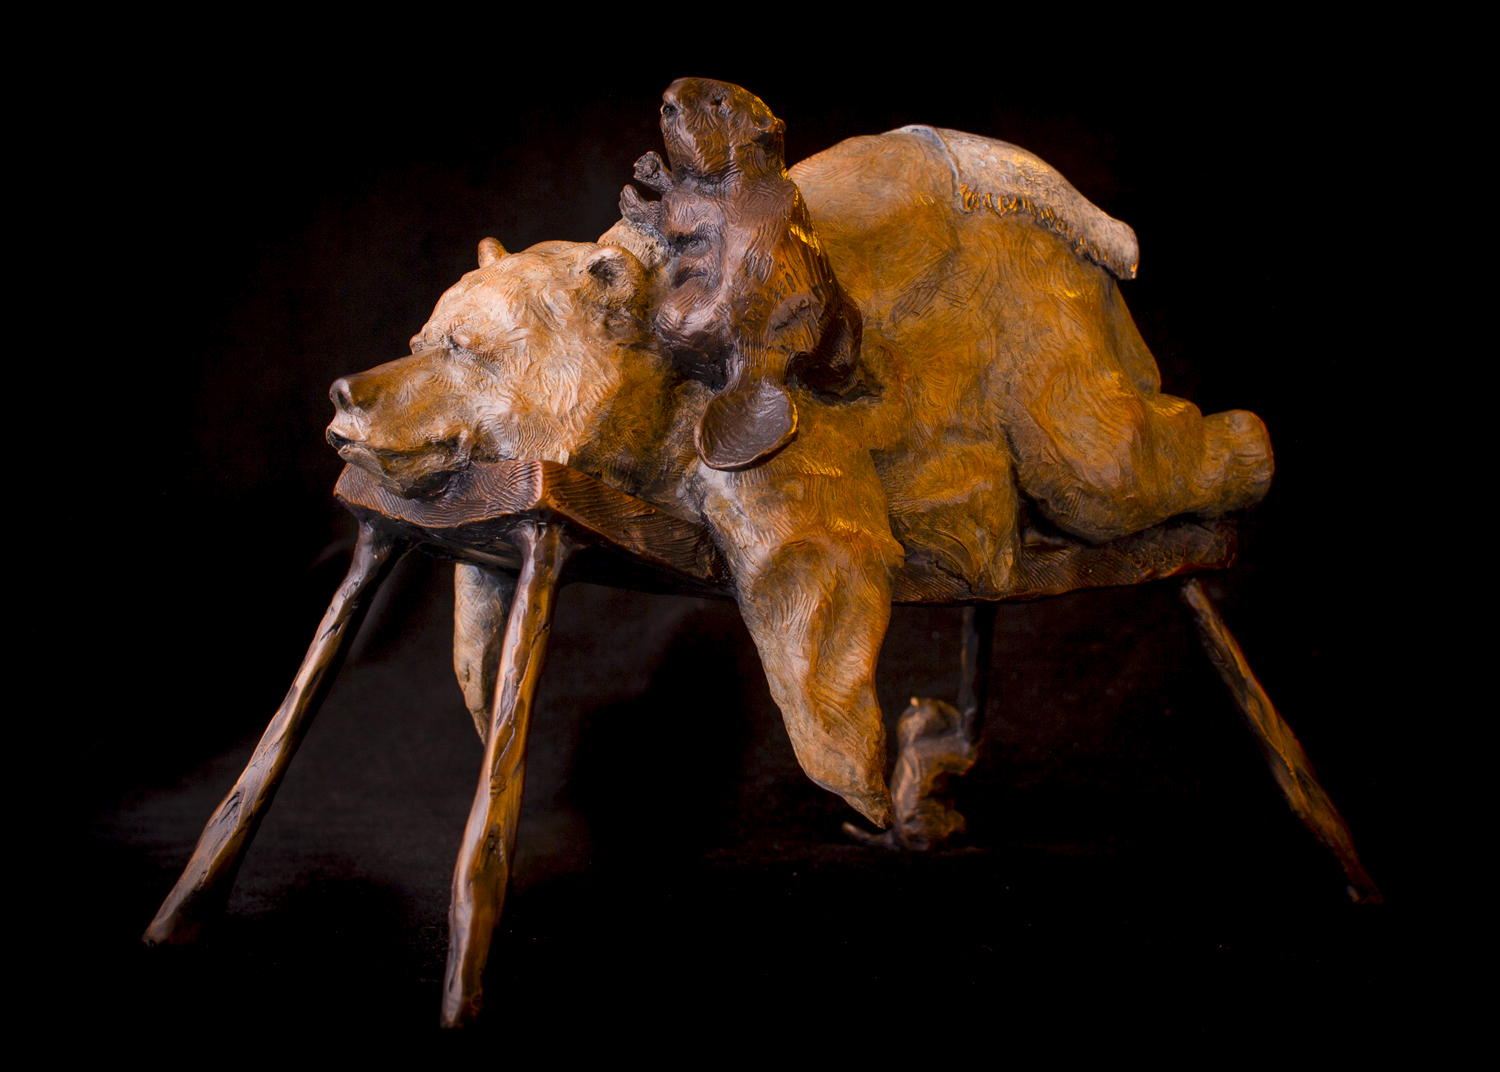 "Bear Necessities | 10"" x 12"" x 8"" 